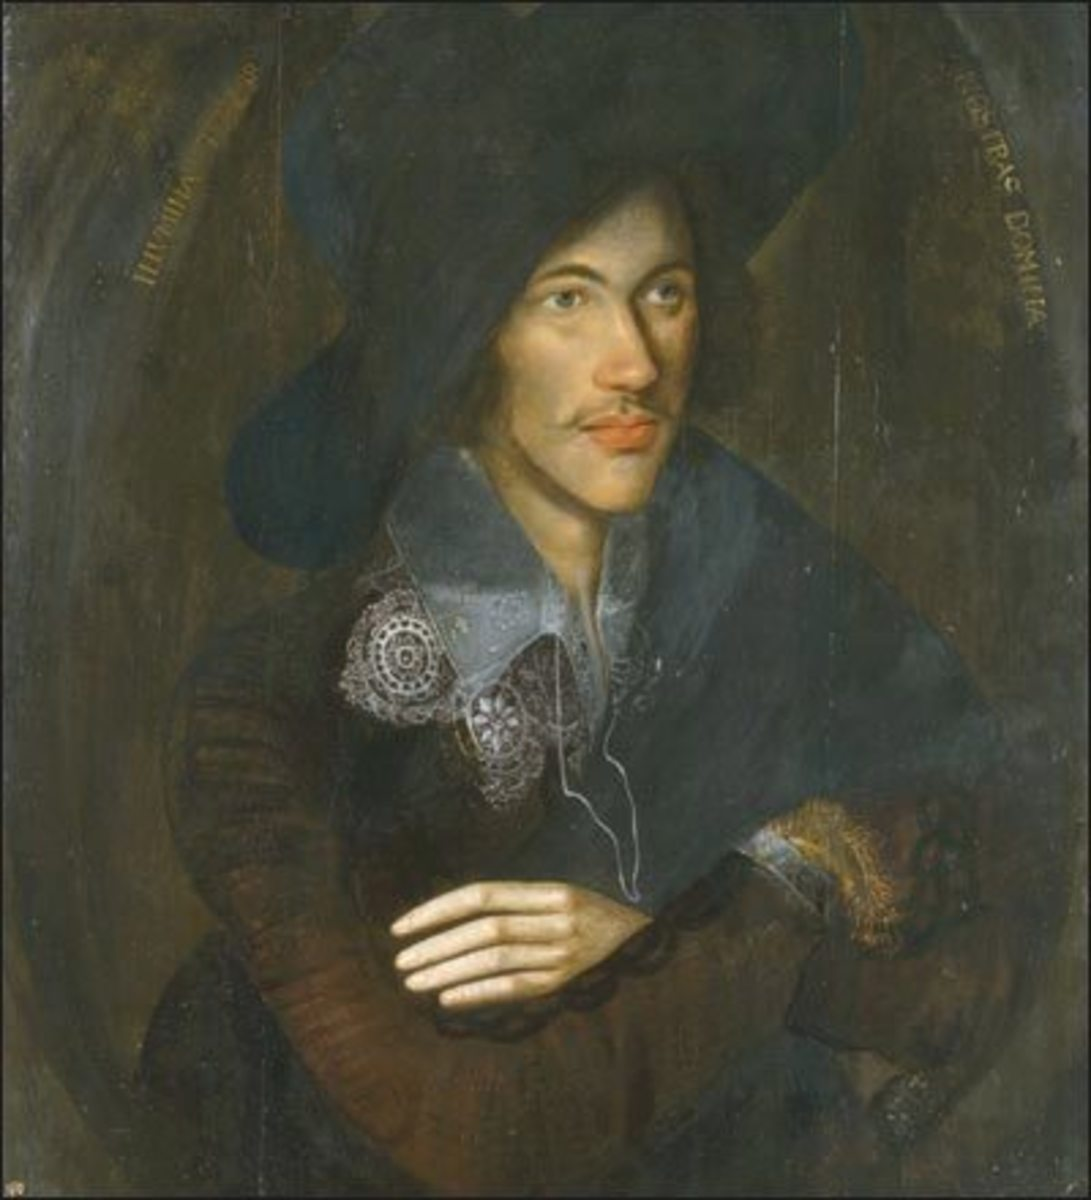 Analysis of Poem Death Be Not Proud (Holy Sonnet 10) by John Donne